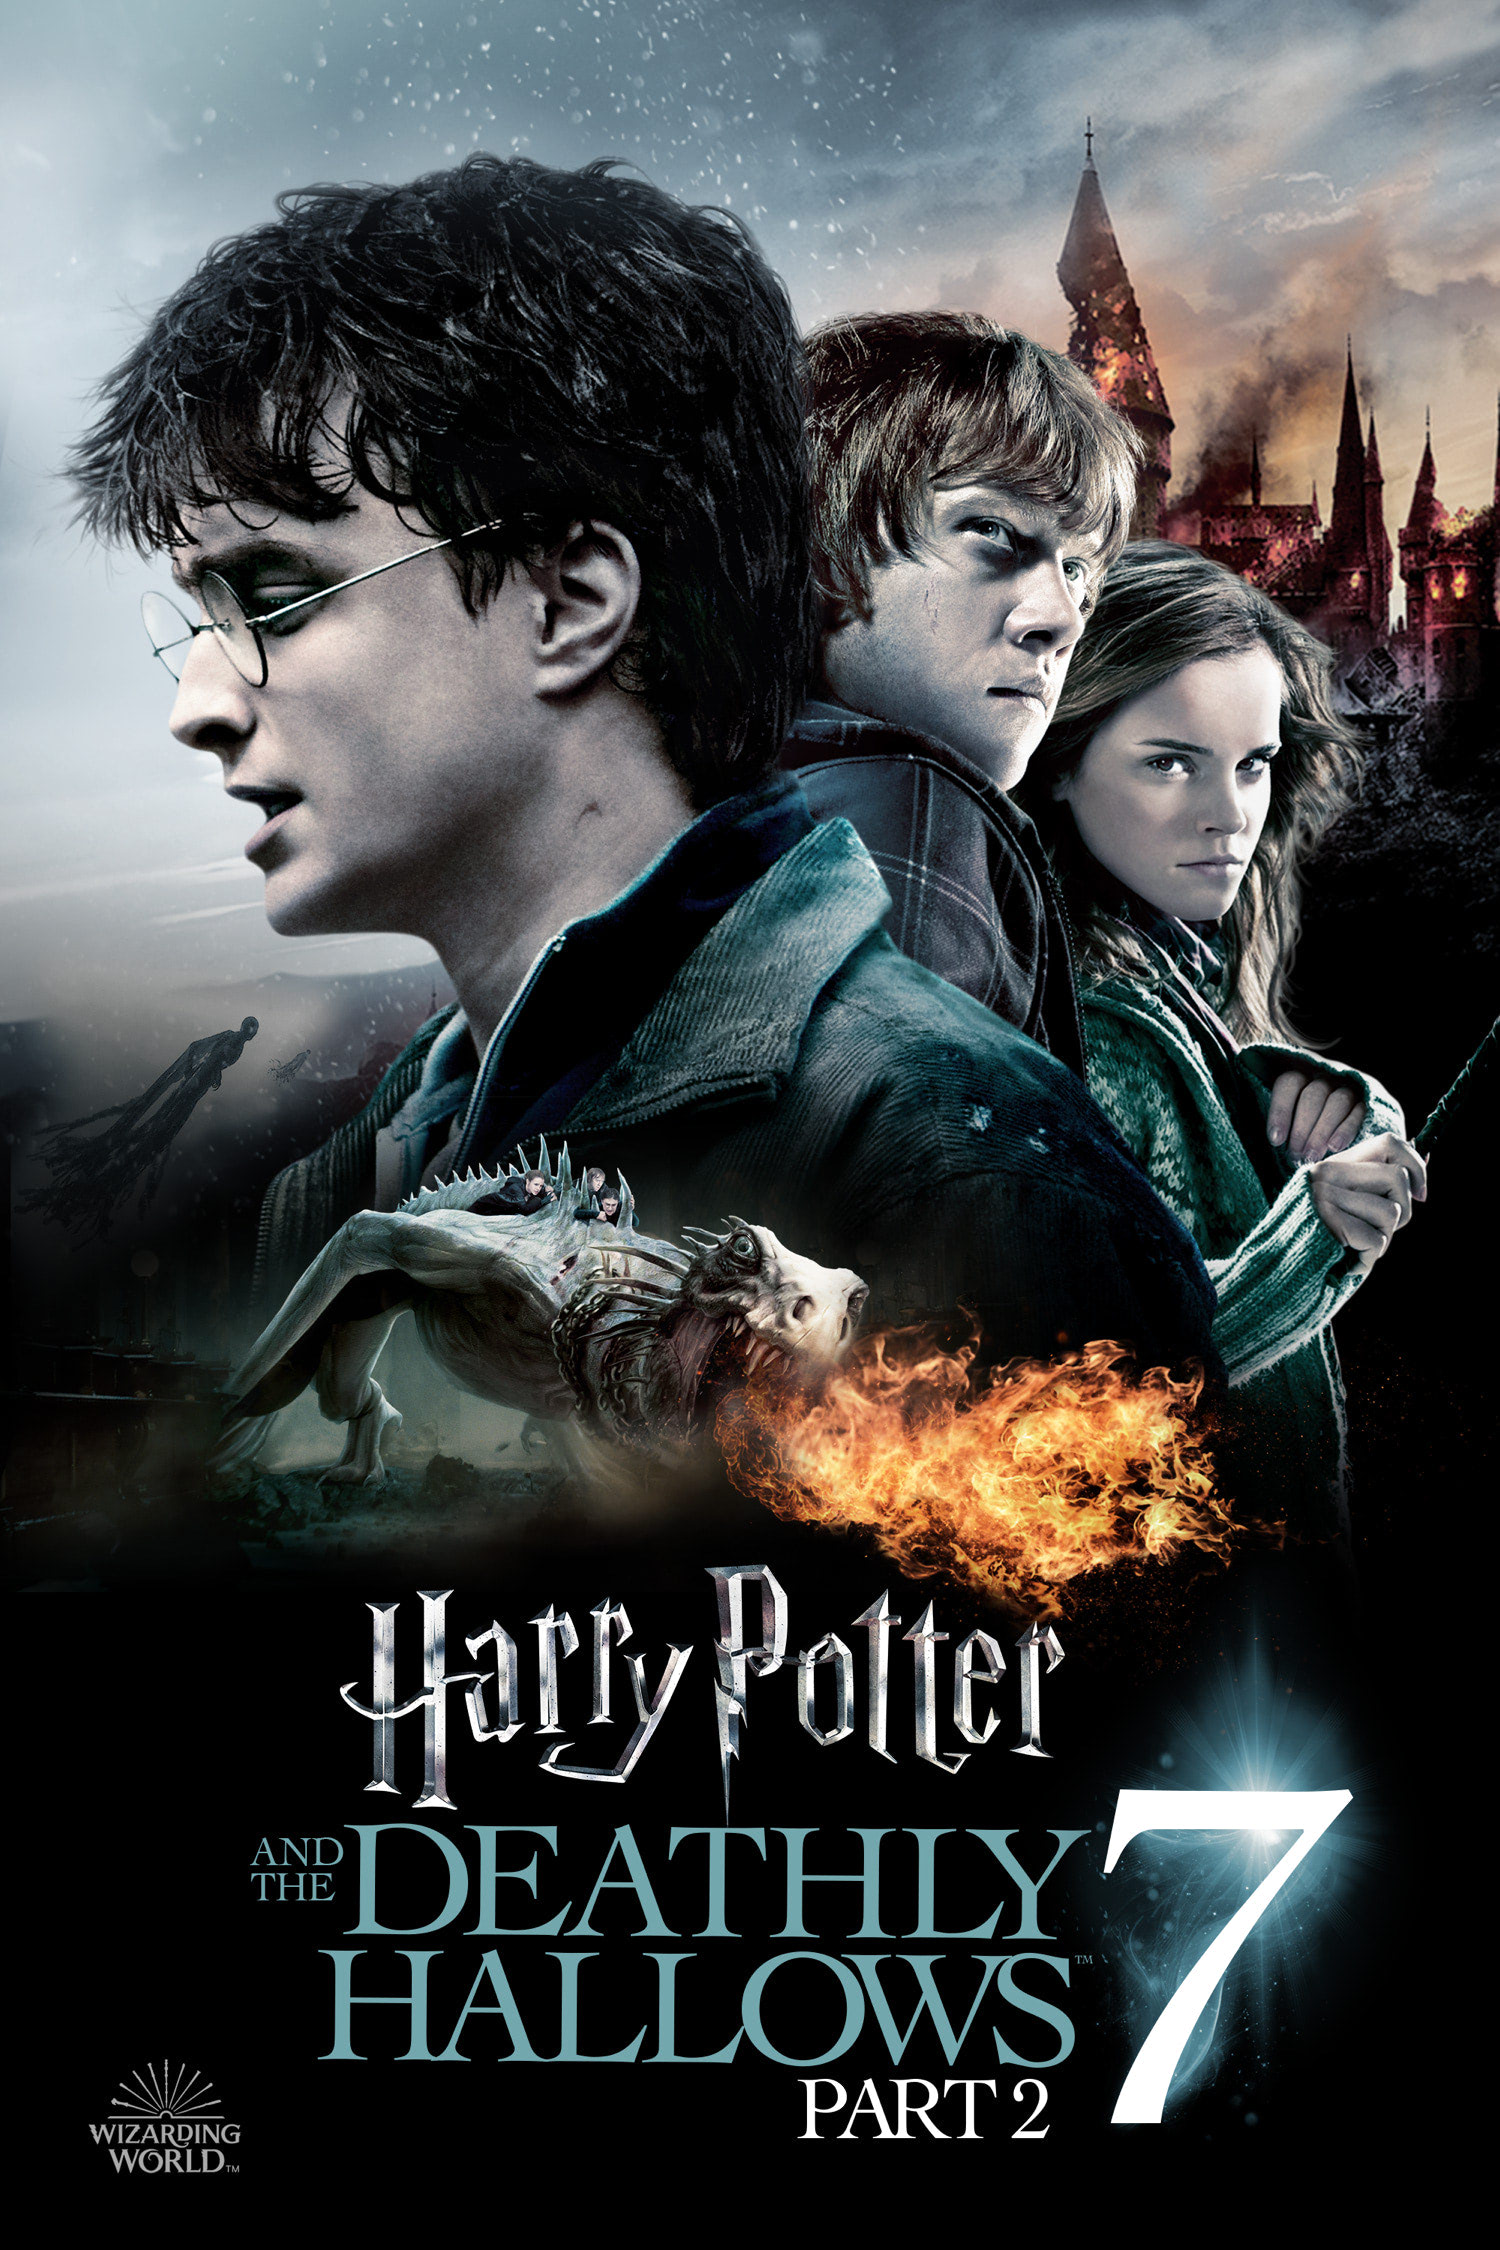 'Deathly Hallows: Part 2' Wizarding World poster